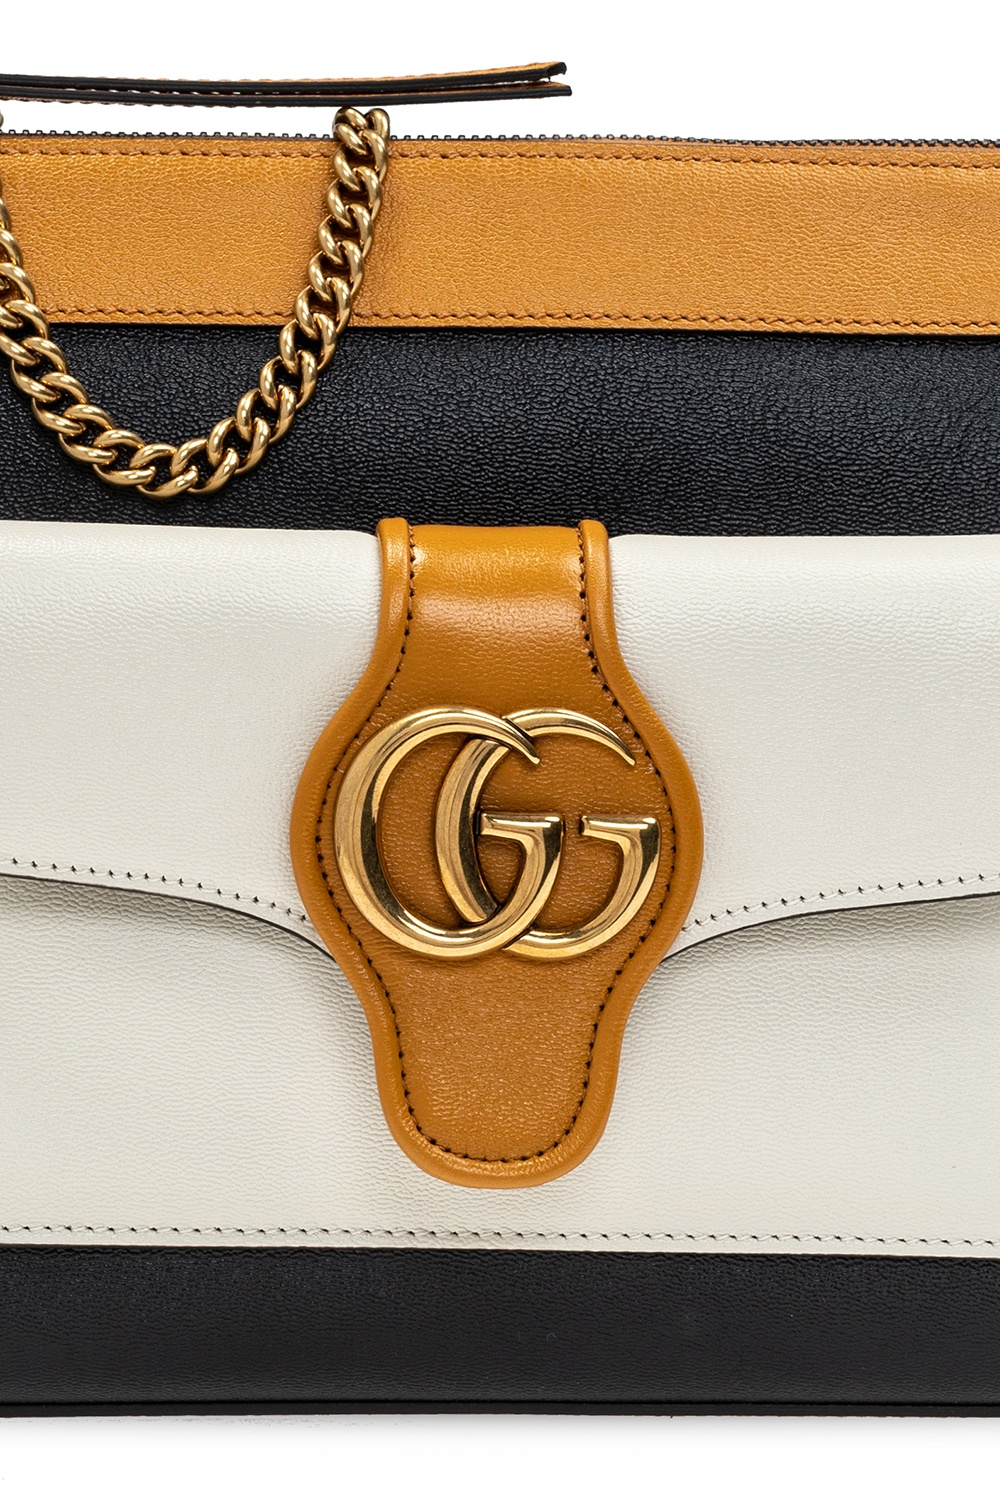 Gucci 'Double G' shoulder bag